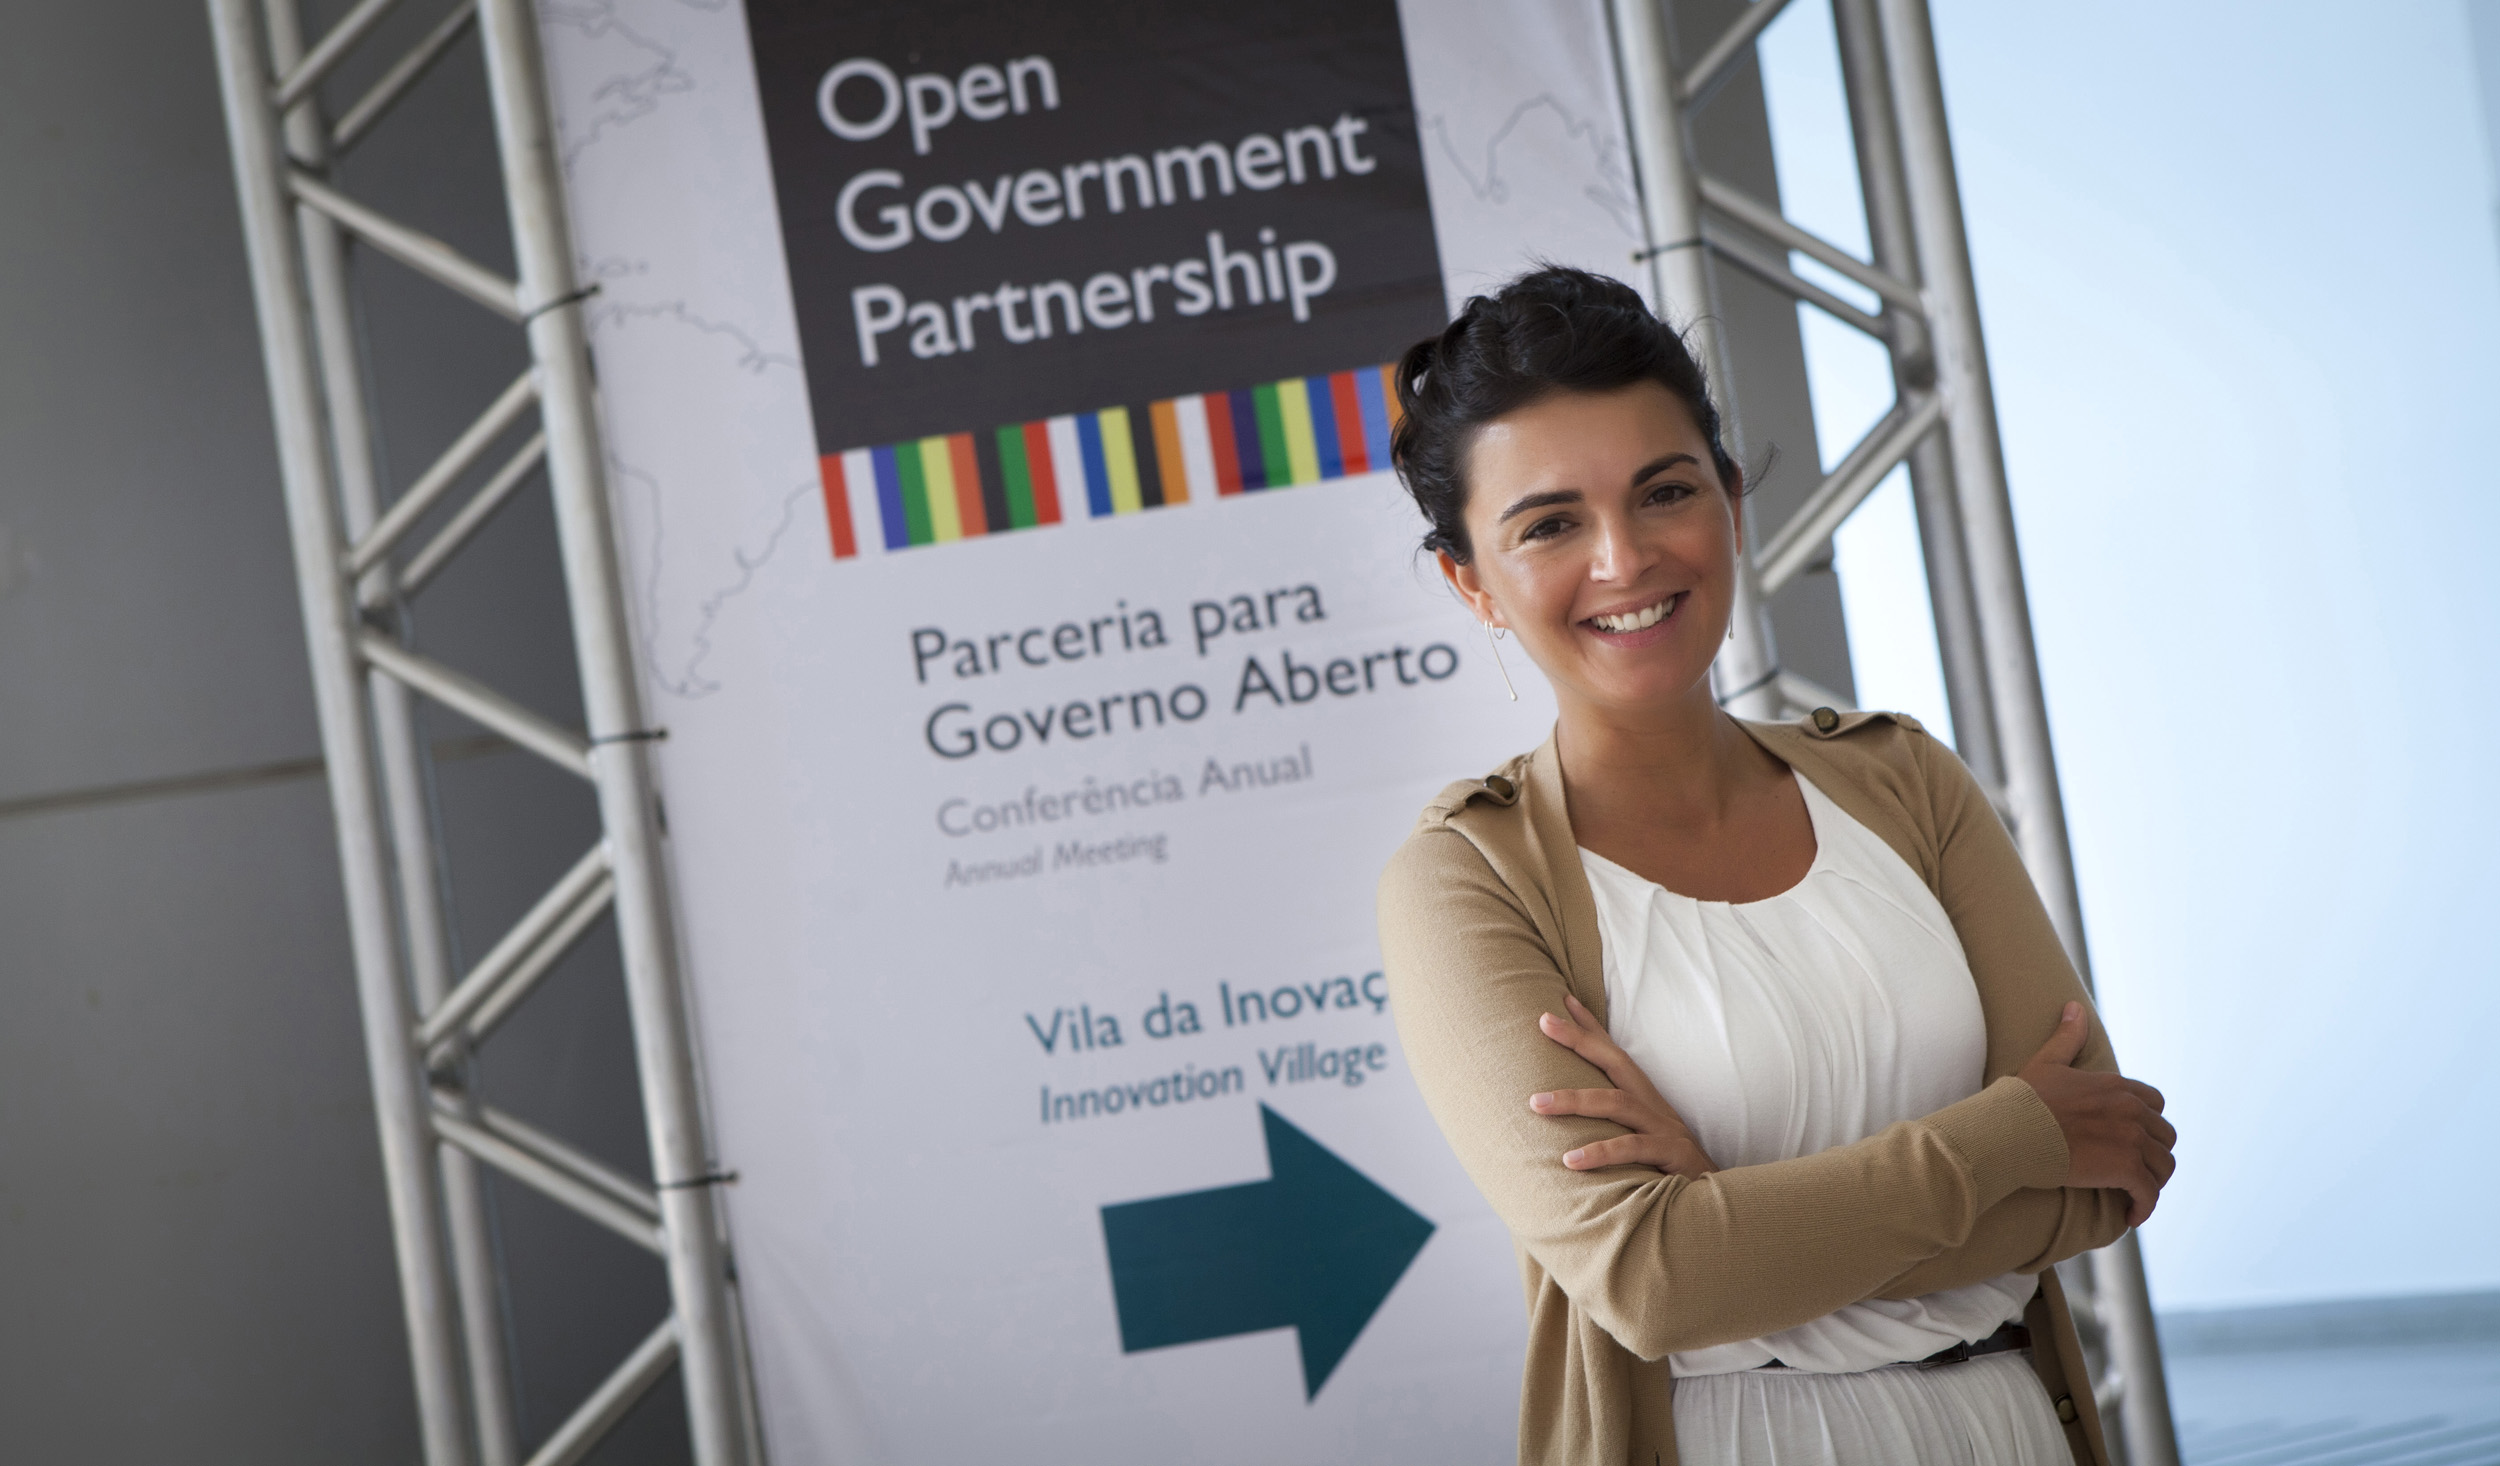 Irekia recognised among international experts in Open Government